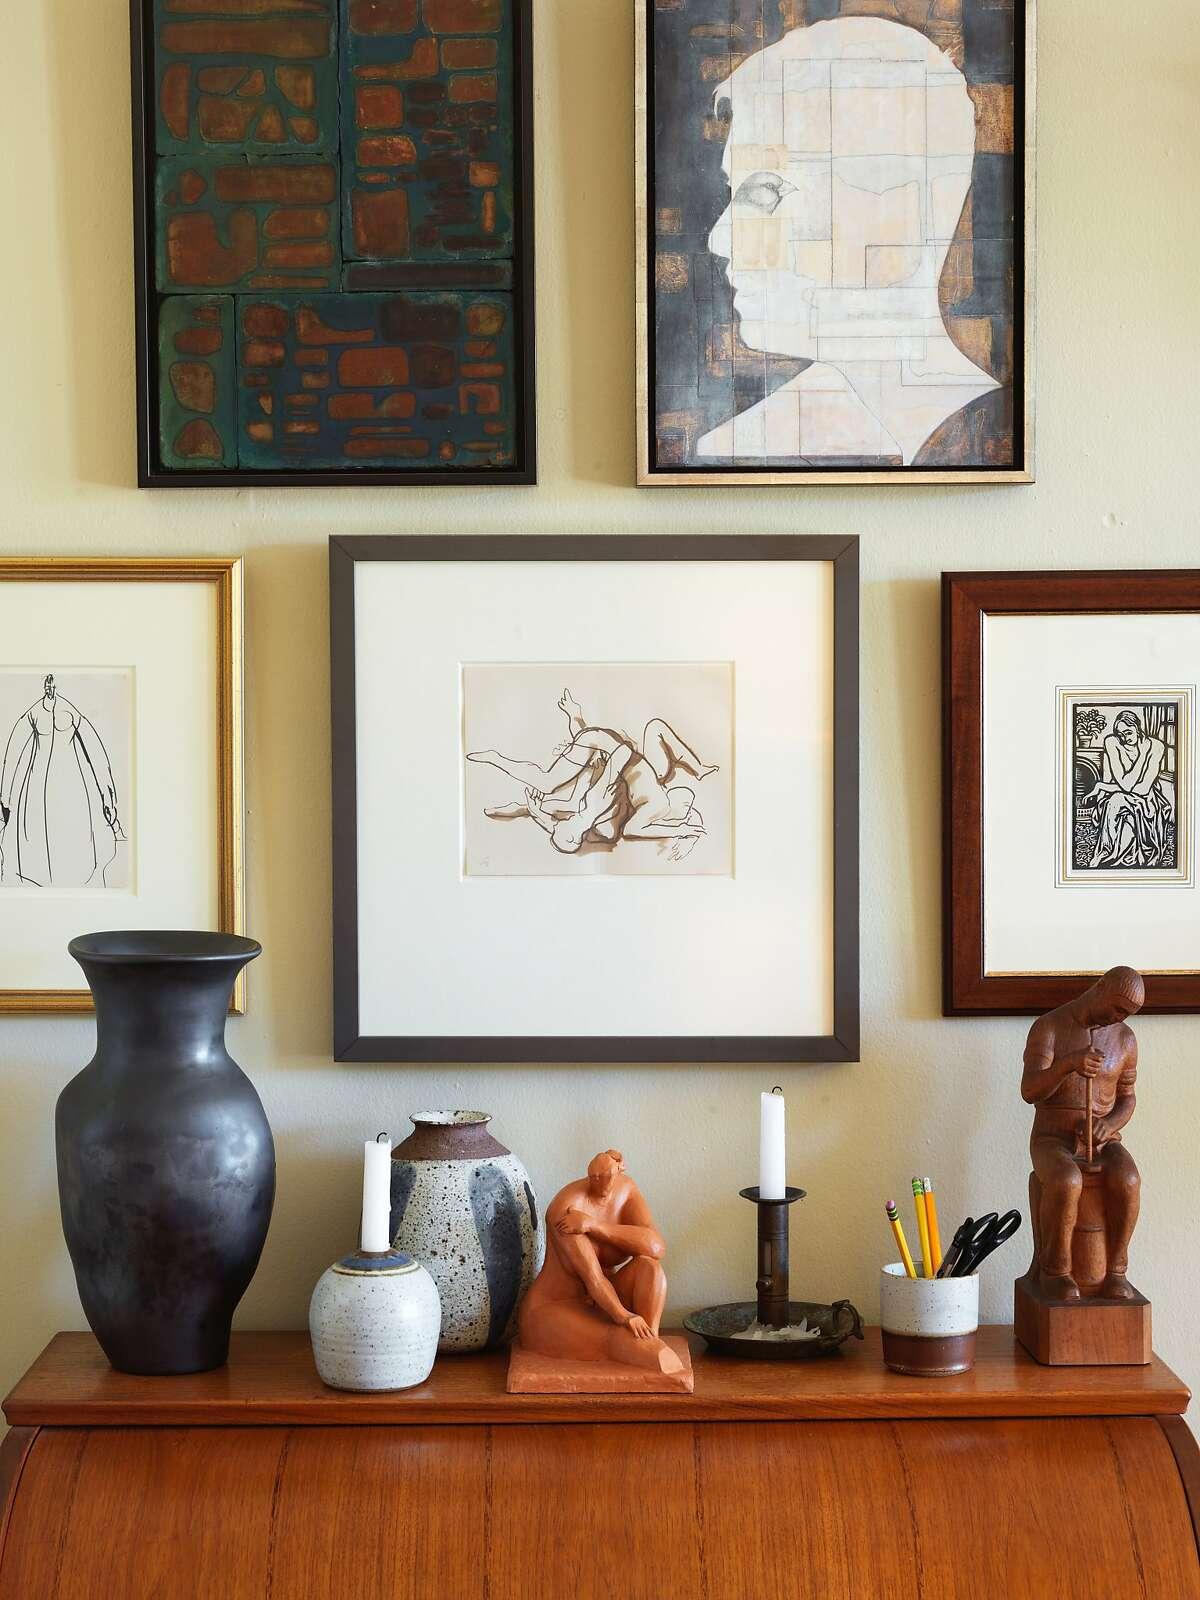 Artistic touches fill every corner of the 1,000-square-foot apartment near Mission Dolores.